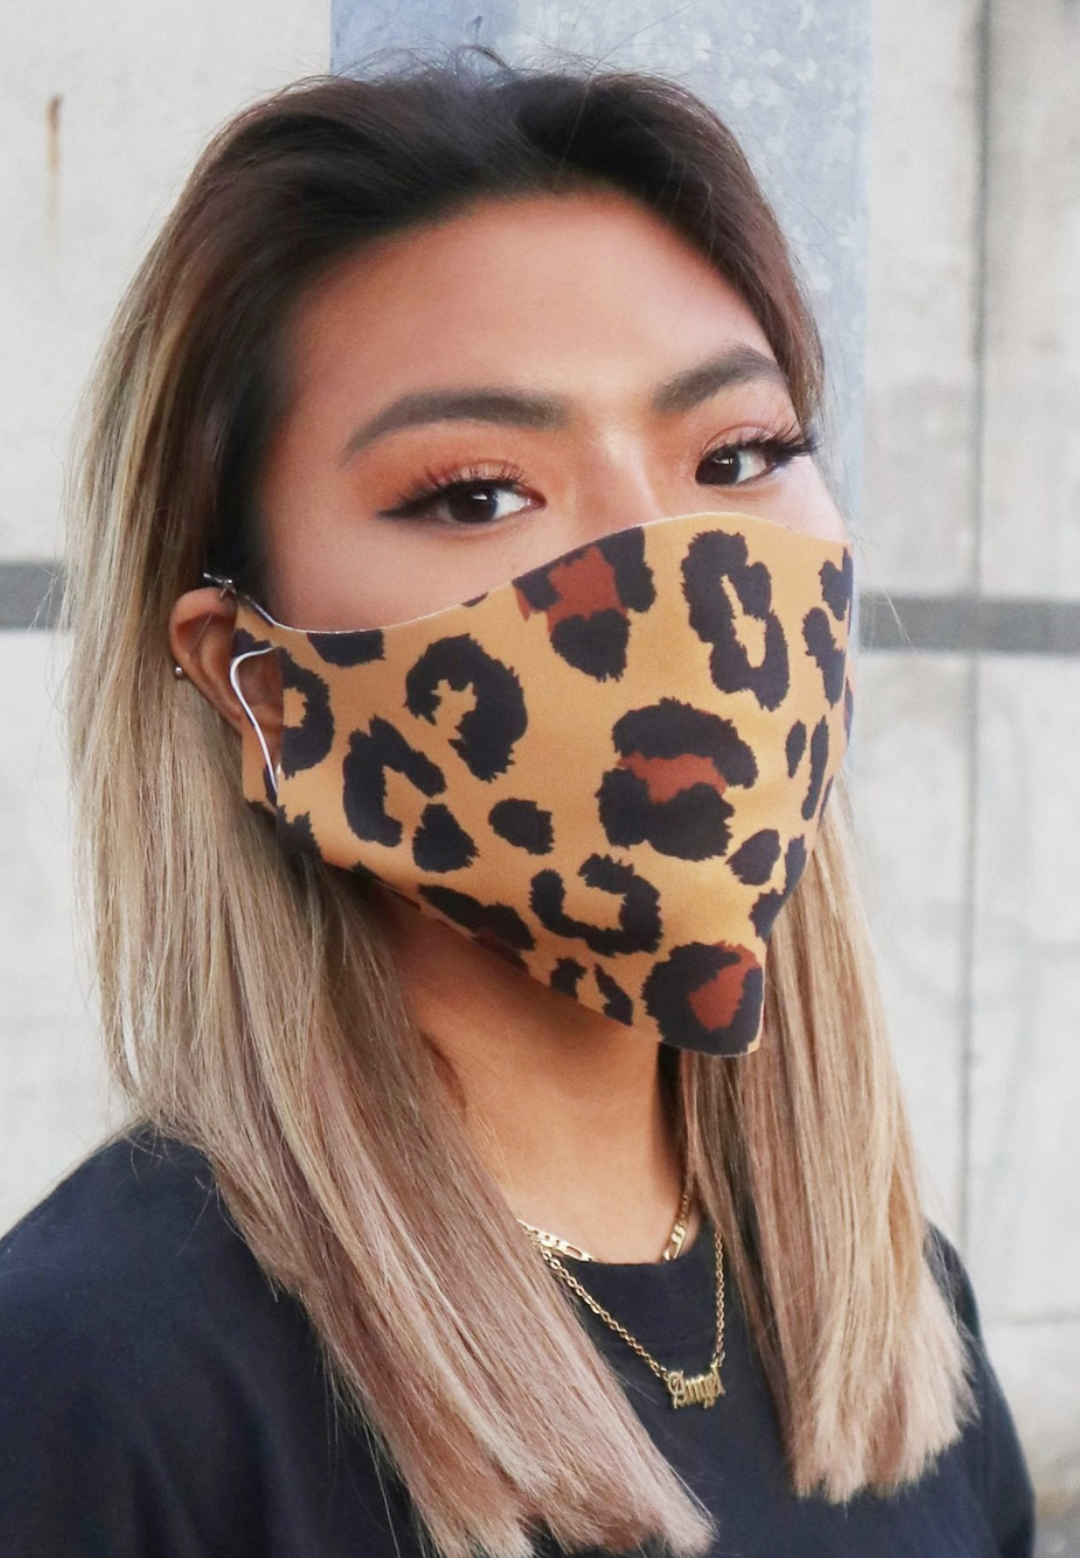 Pack de 2 mascarillas faciales unisex con estampado animal de ASOS DESIGN